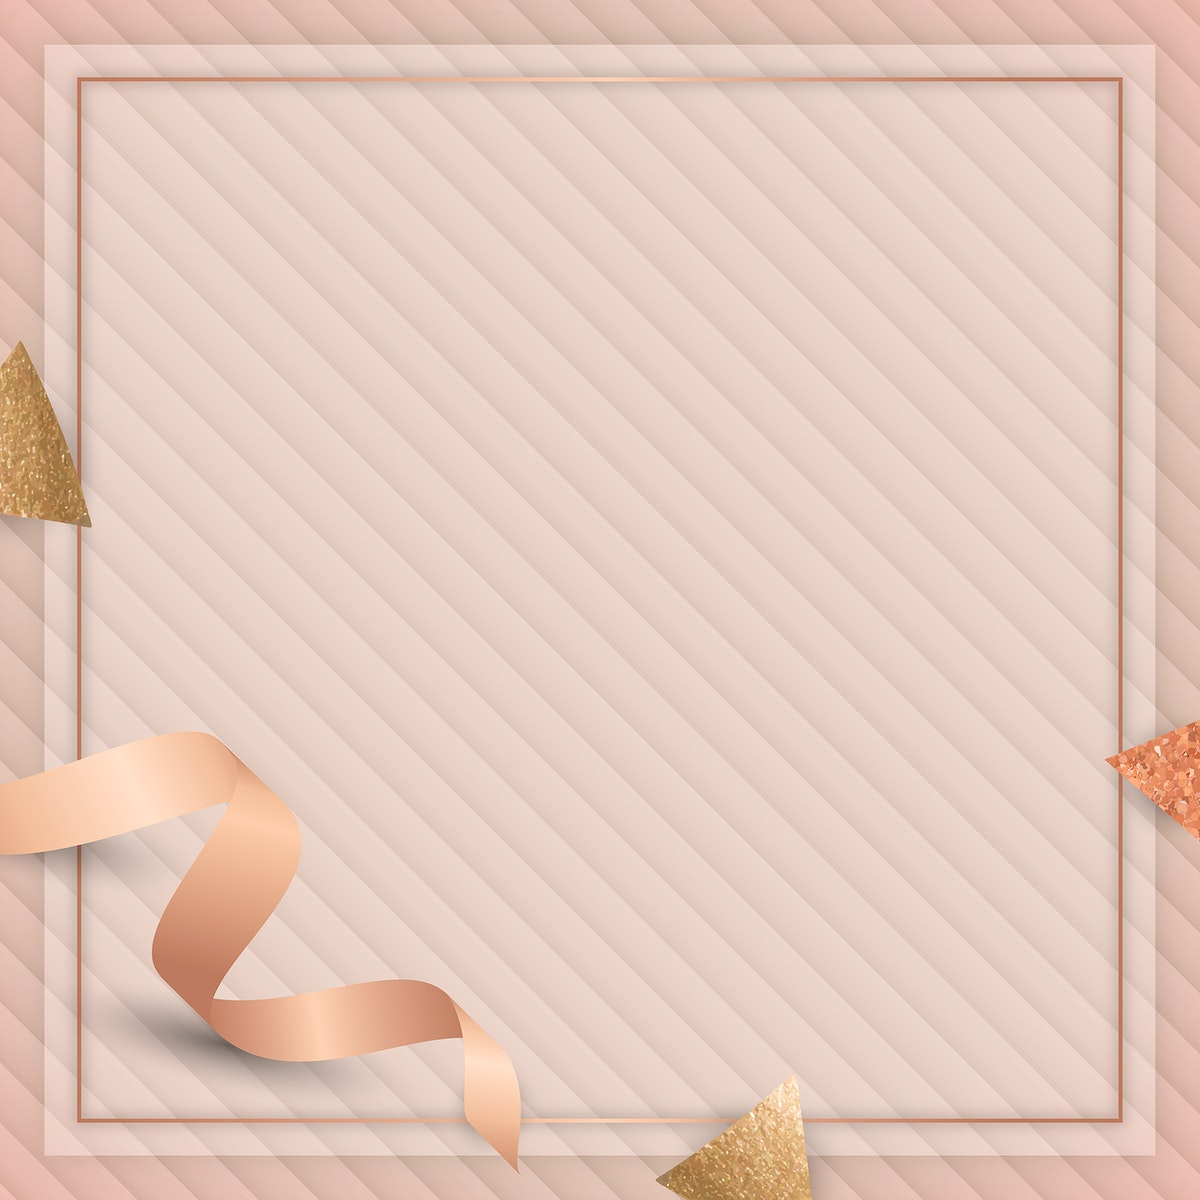 Square frame with pink gold ribbon illustration